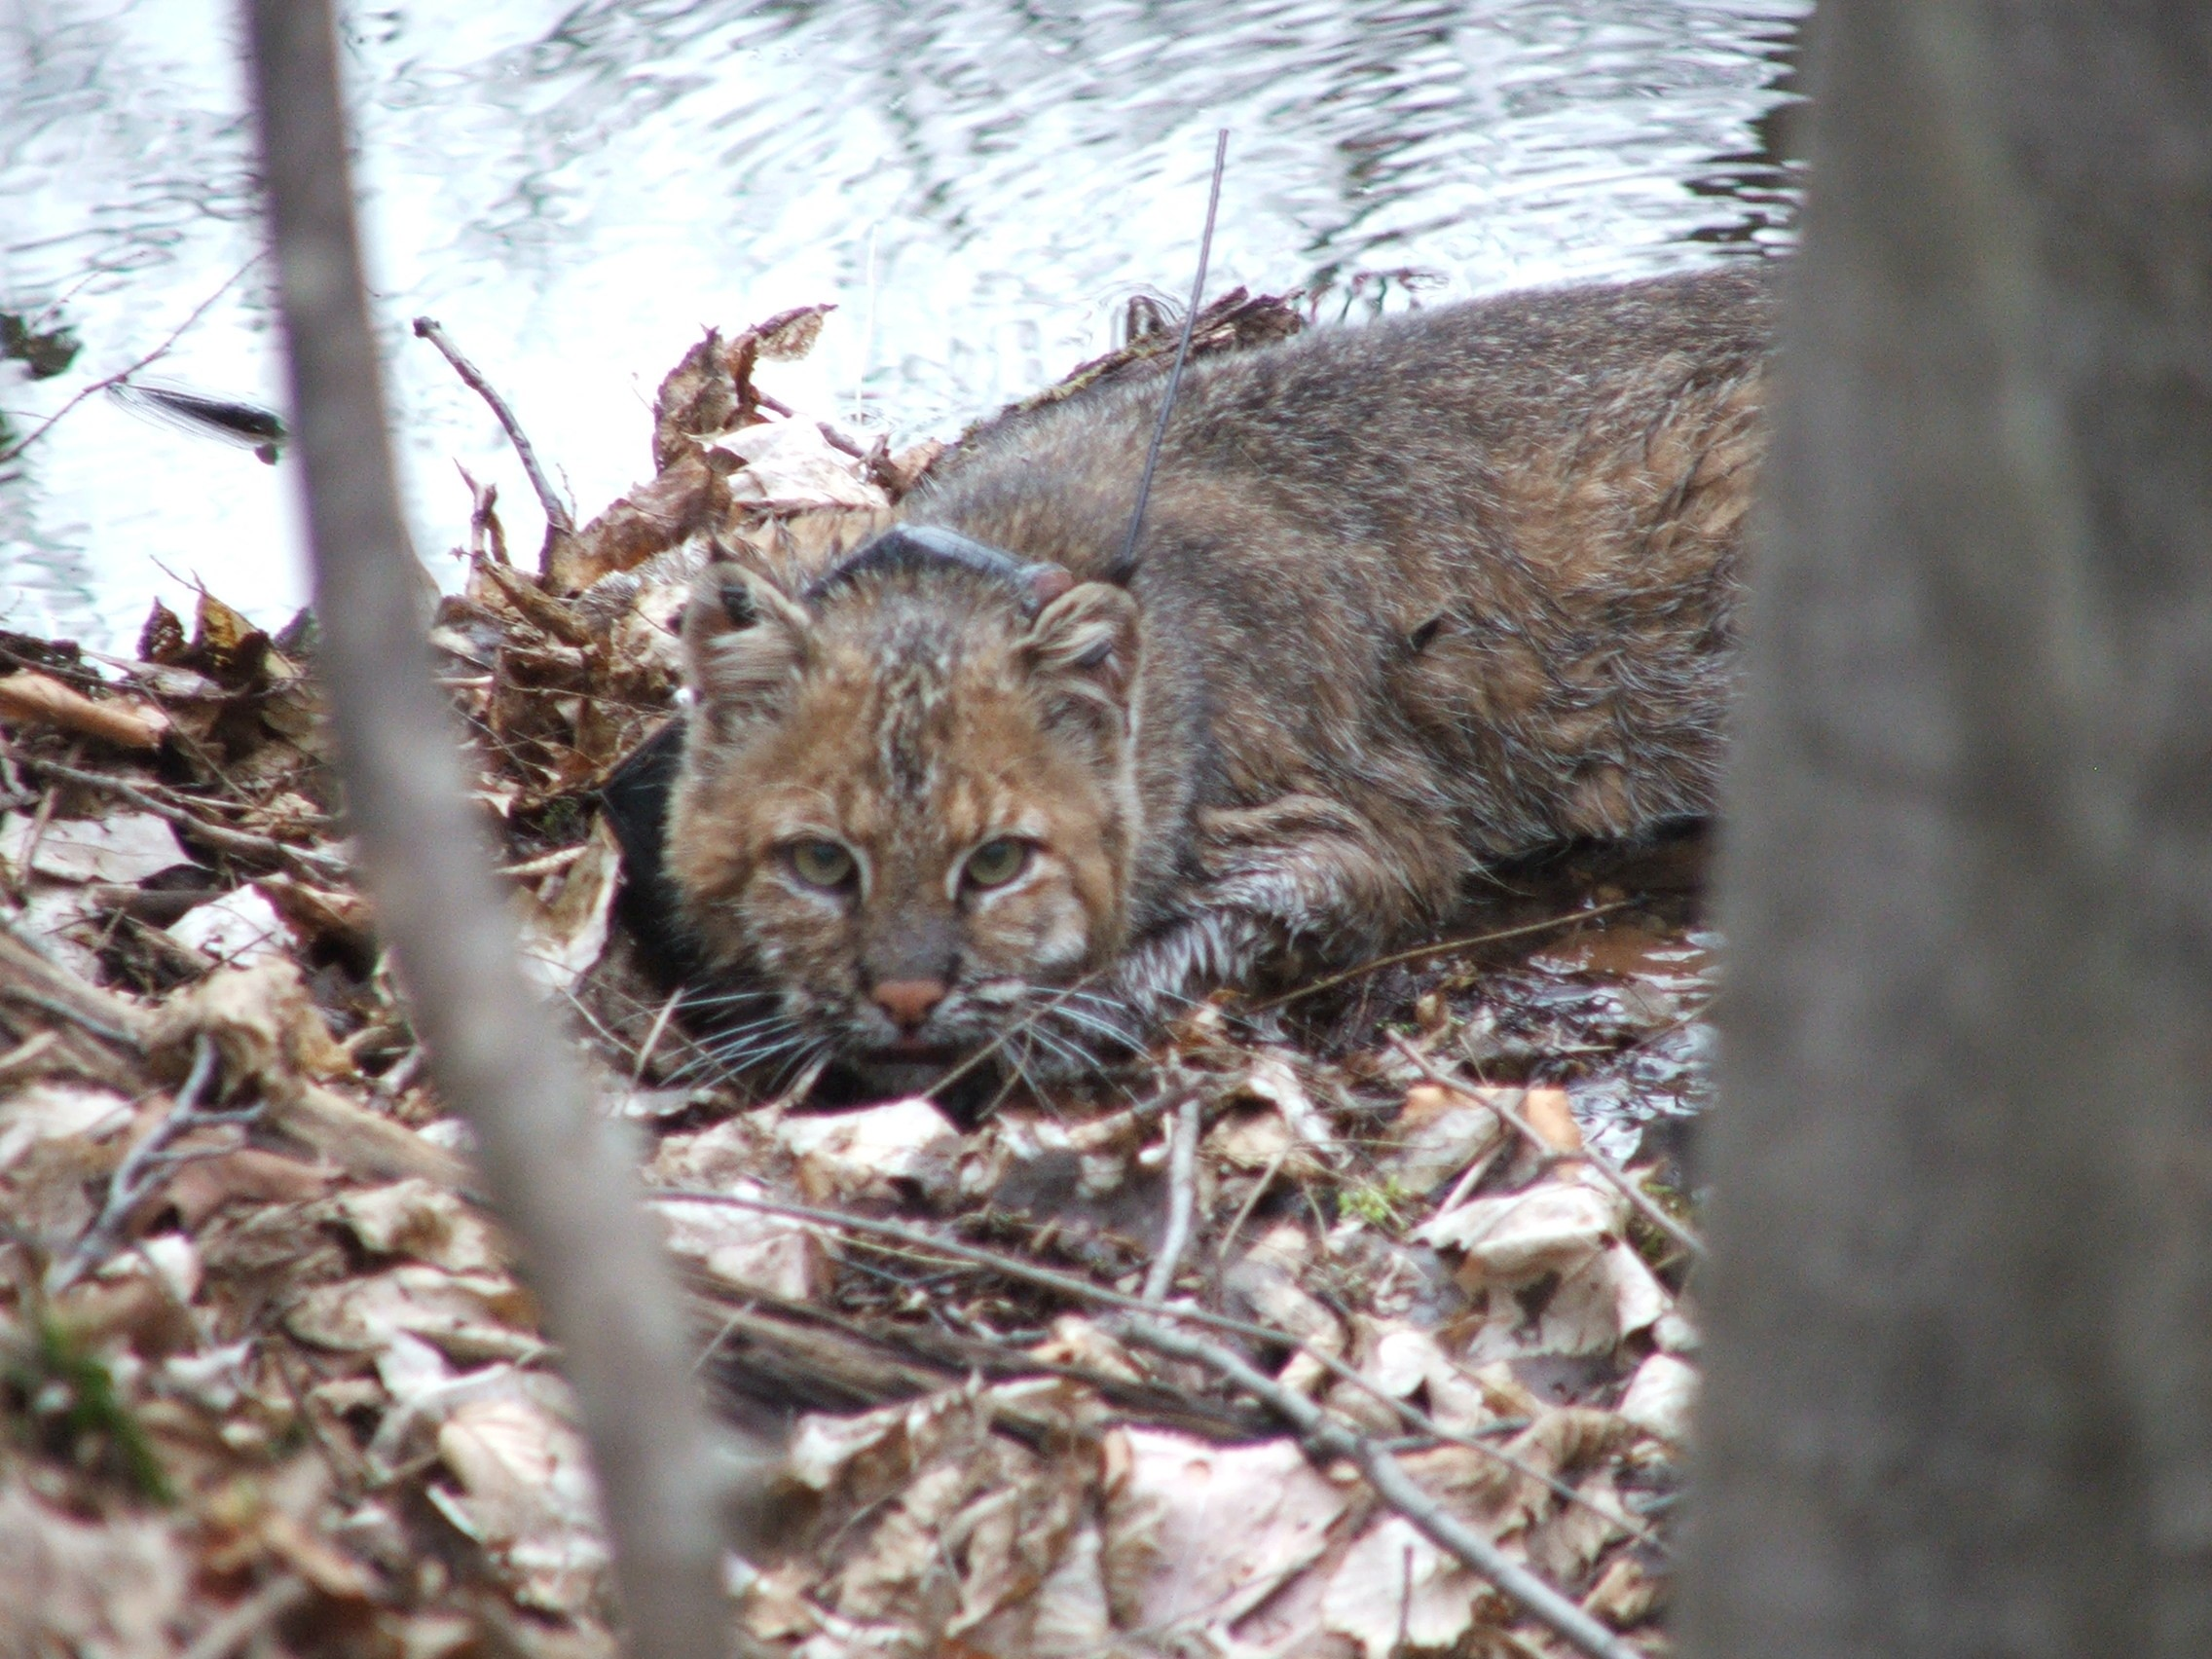 Bobcat with newly attached GPS collar, which automatically collects data on the bobcat's location every 20 minutes.  The collar releases automatically after 3 months, when it is retrieved by researchers.